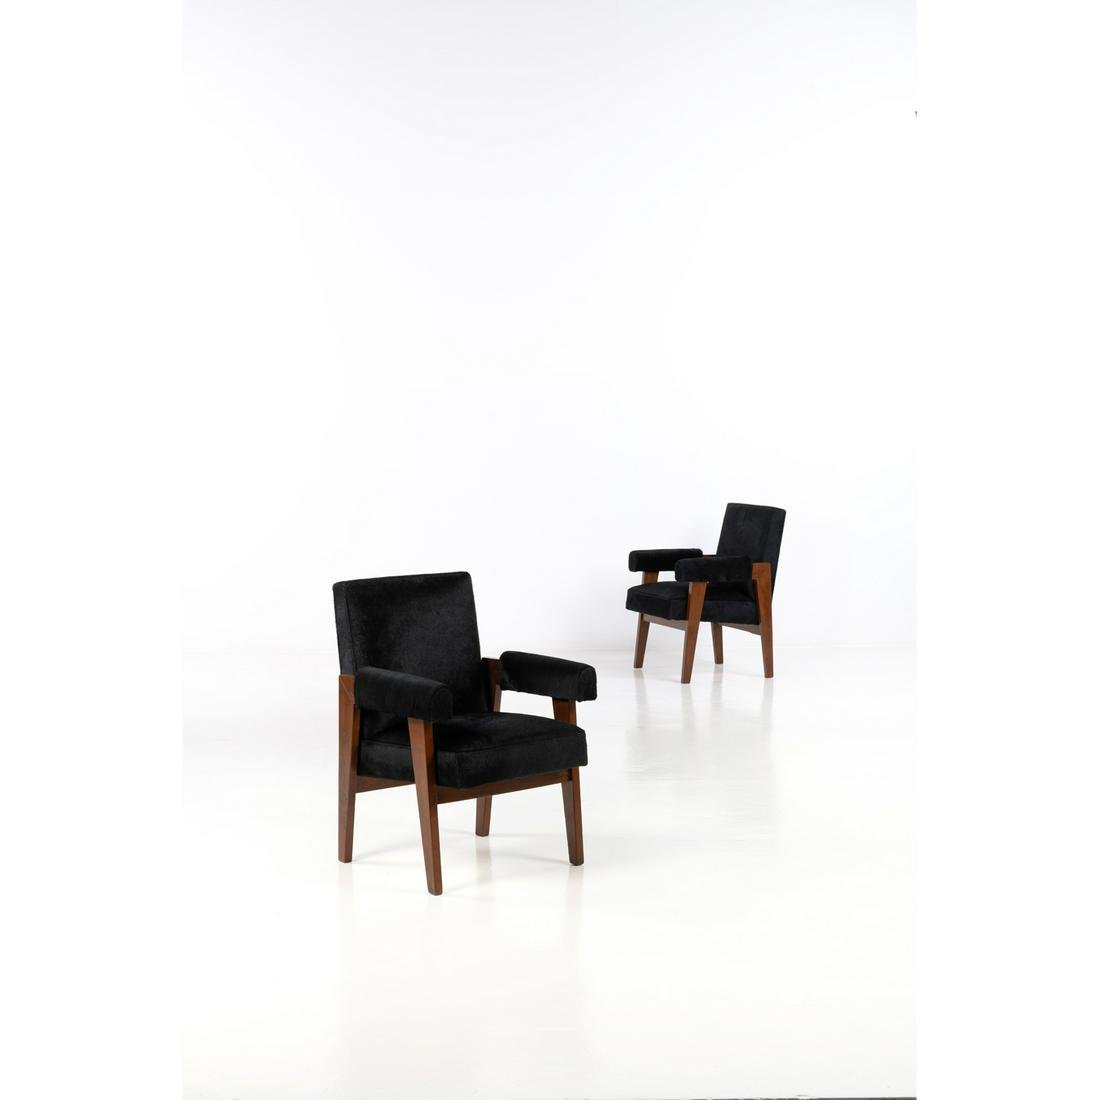 Pierre Jeanneret (1896-1967) Advocate chair Pair of